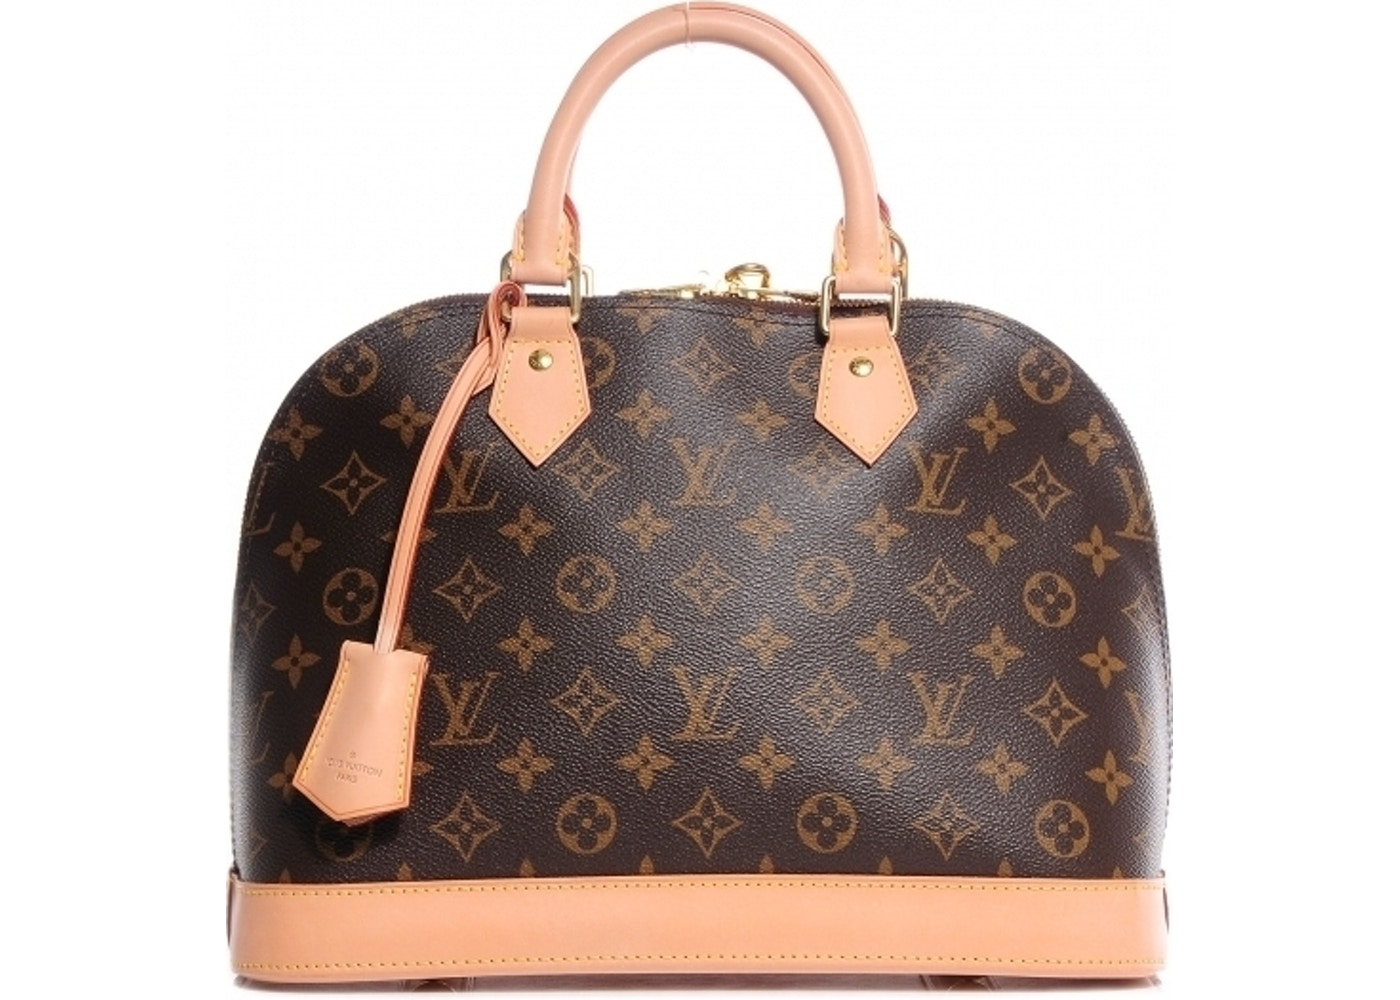 9cbe41be6343 Louis Vuitton Alma PM Monogram Brown